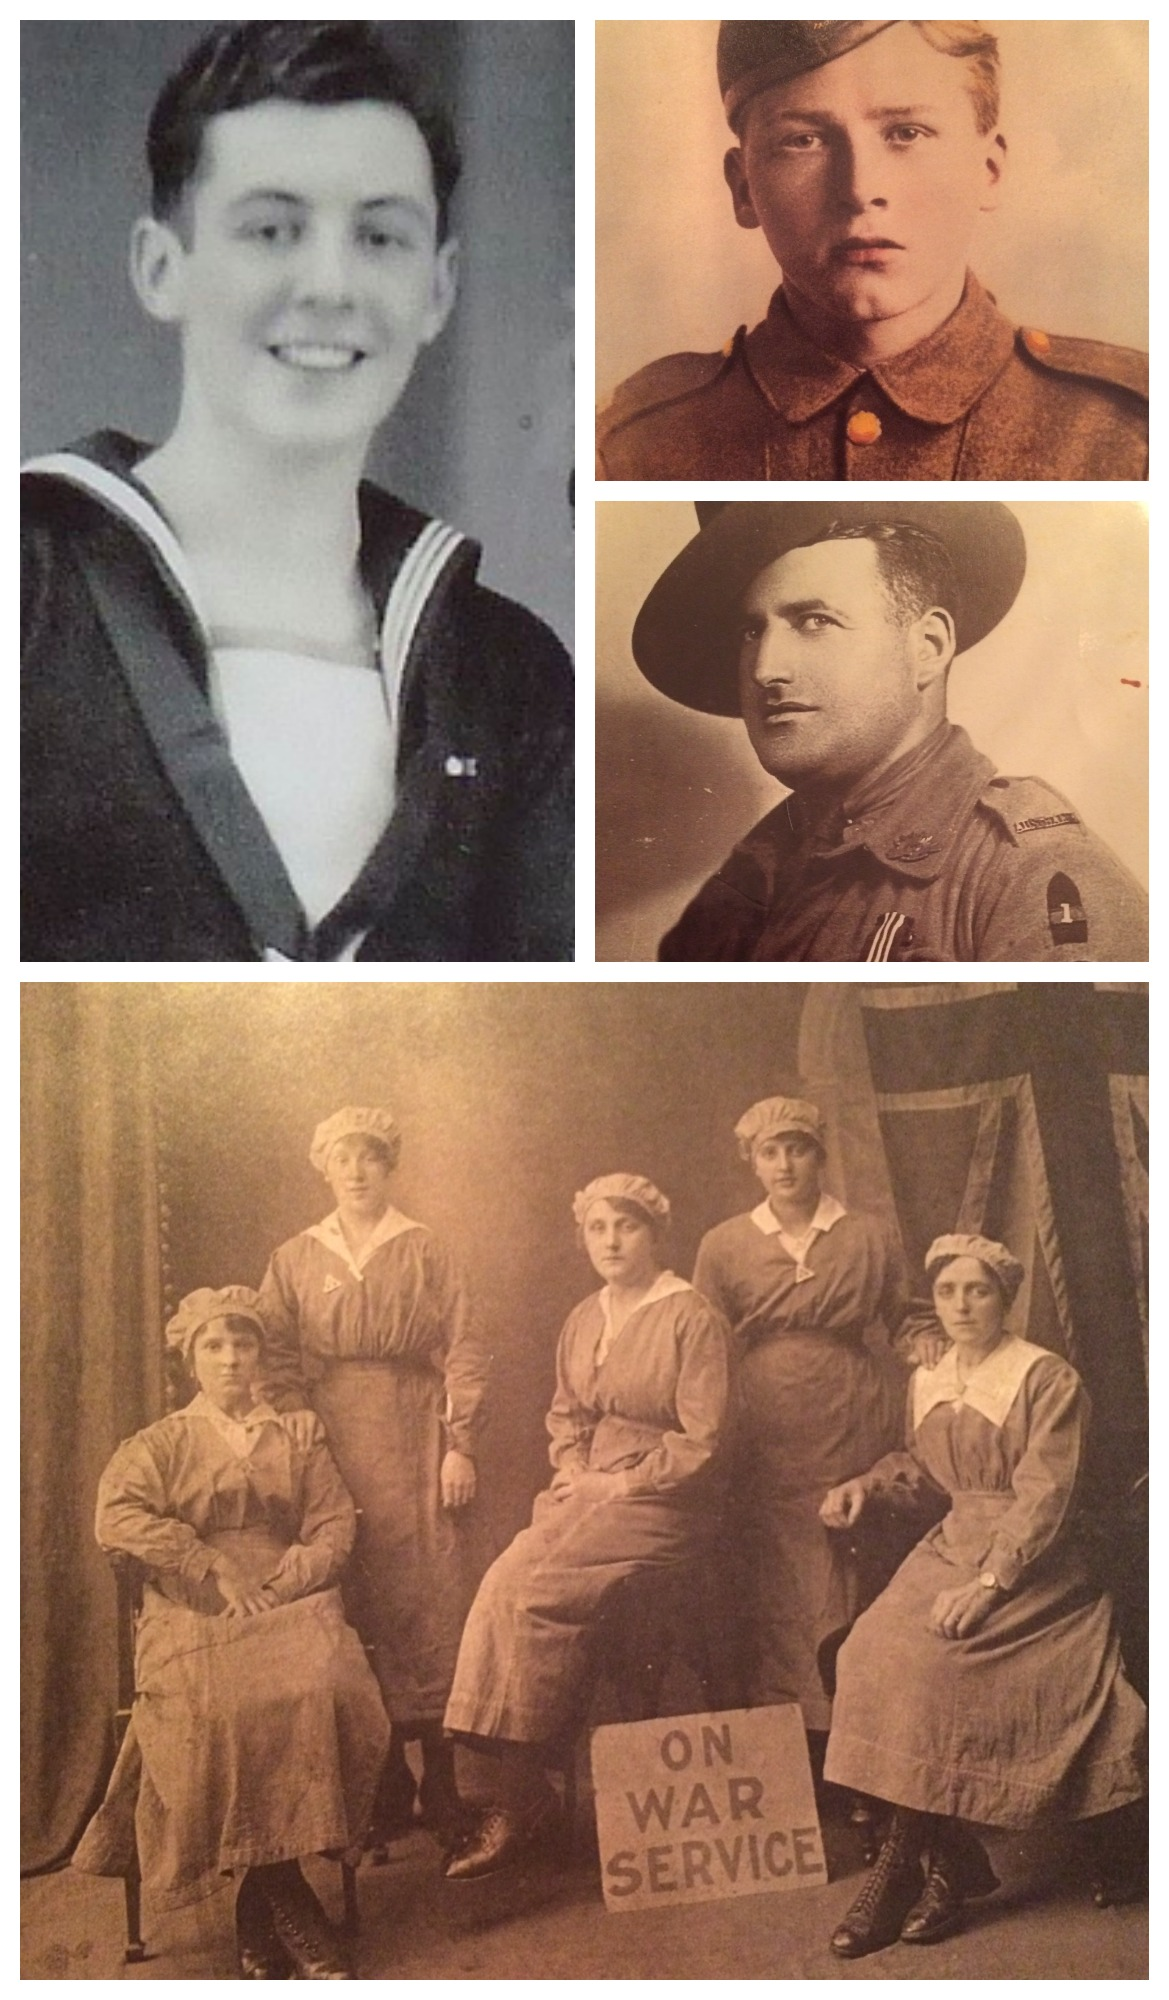 My Family Members Who Served In The War